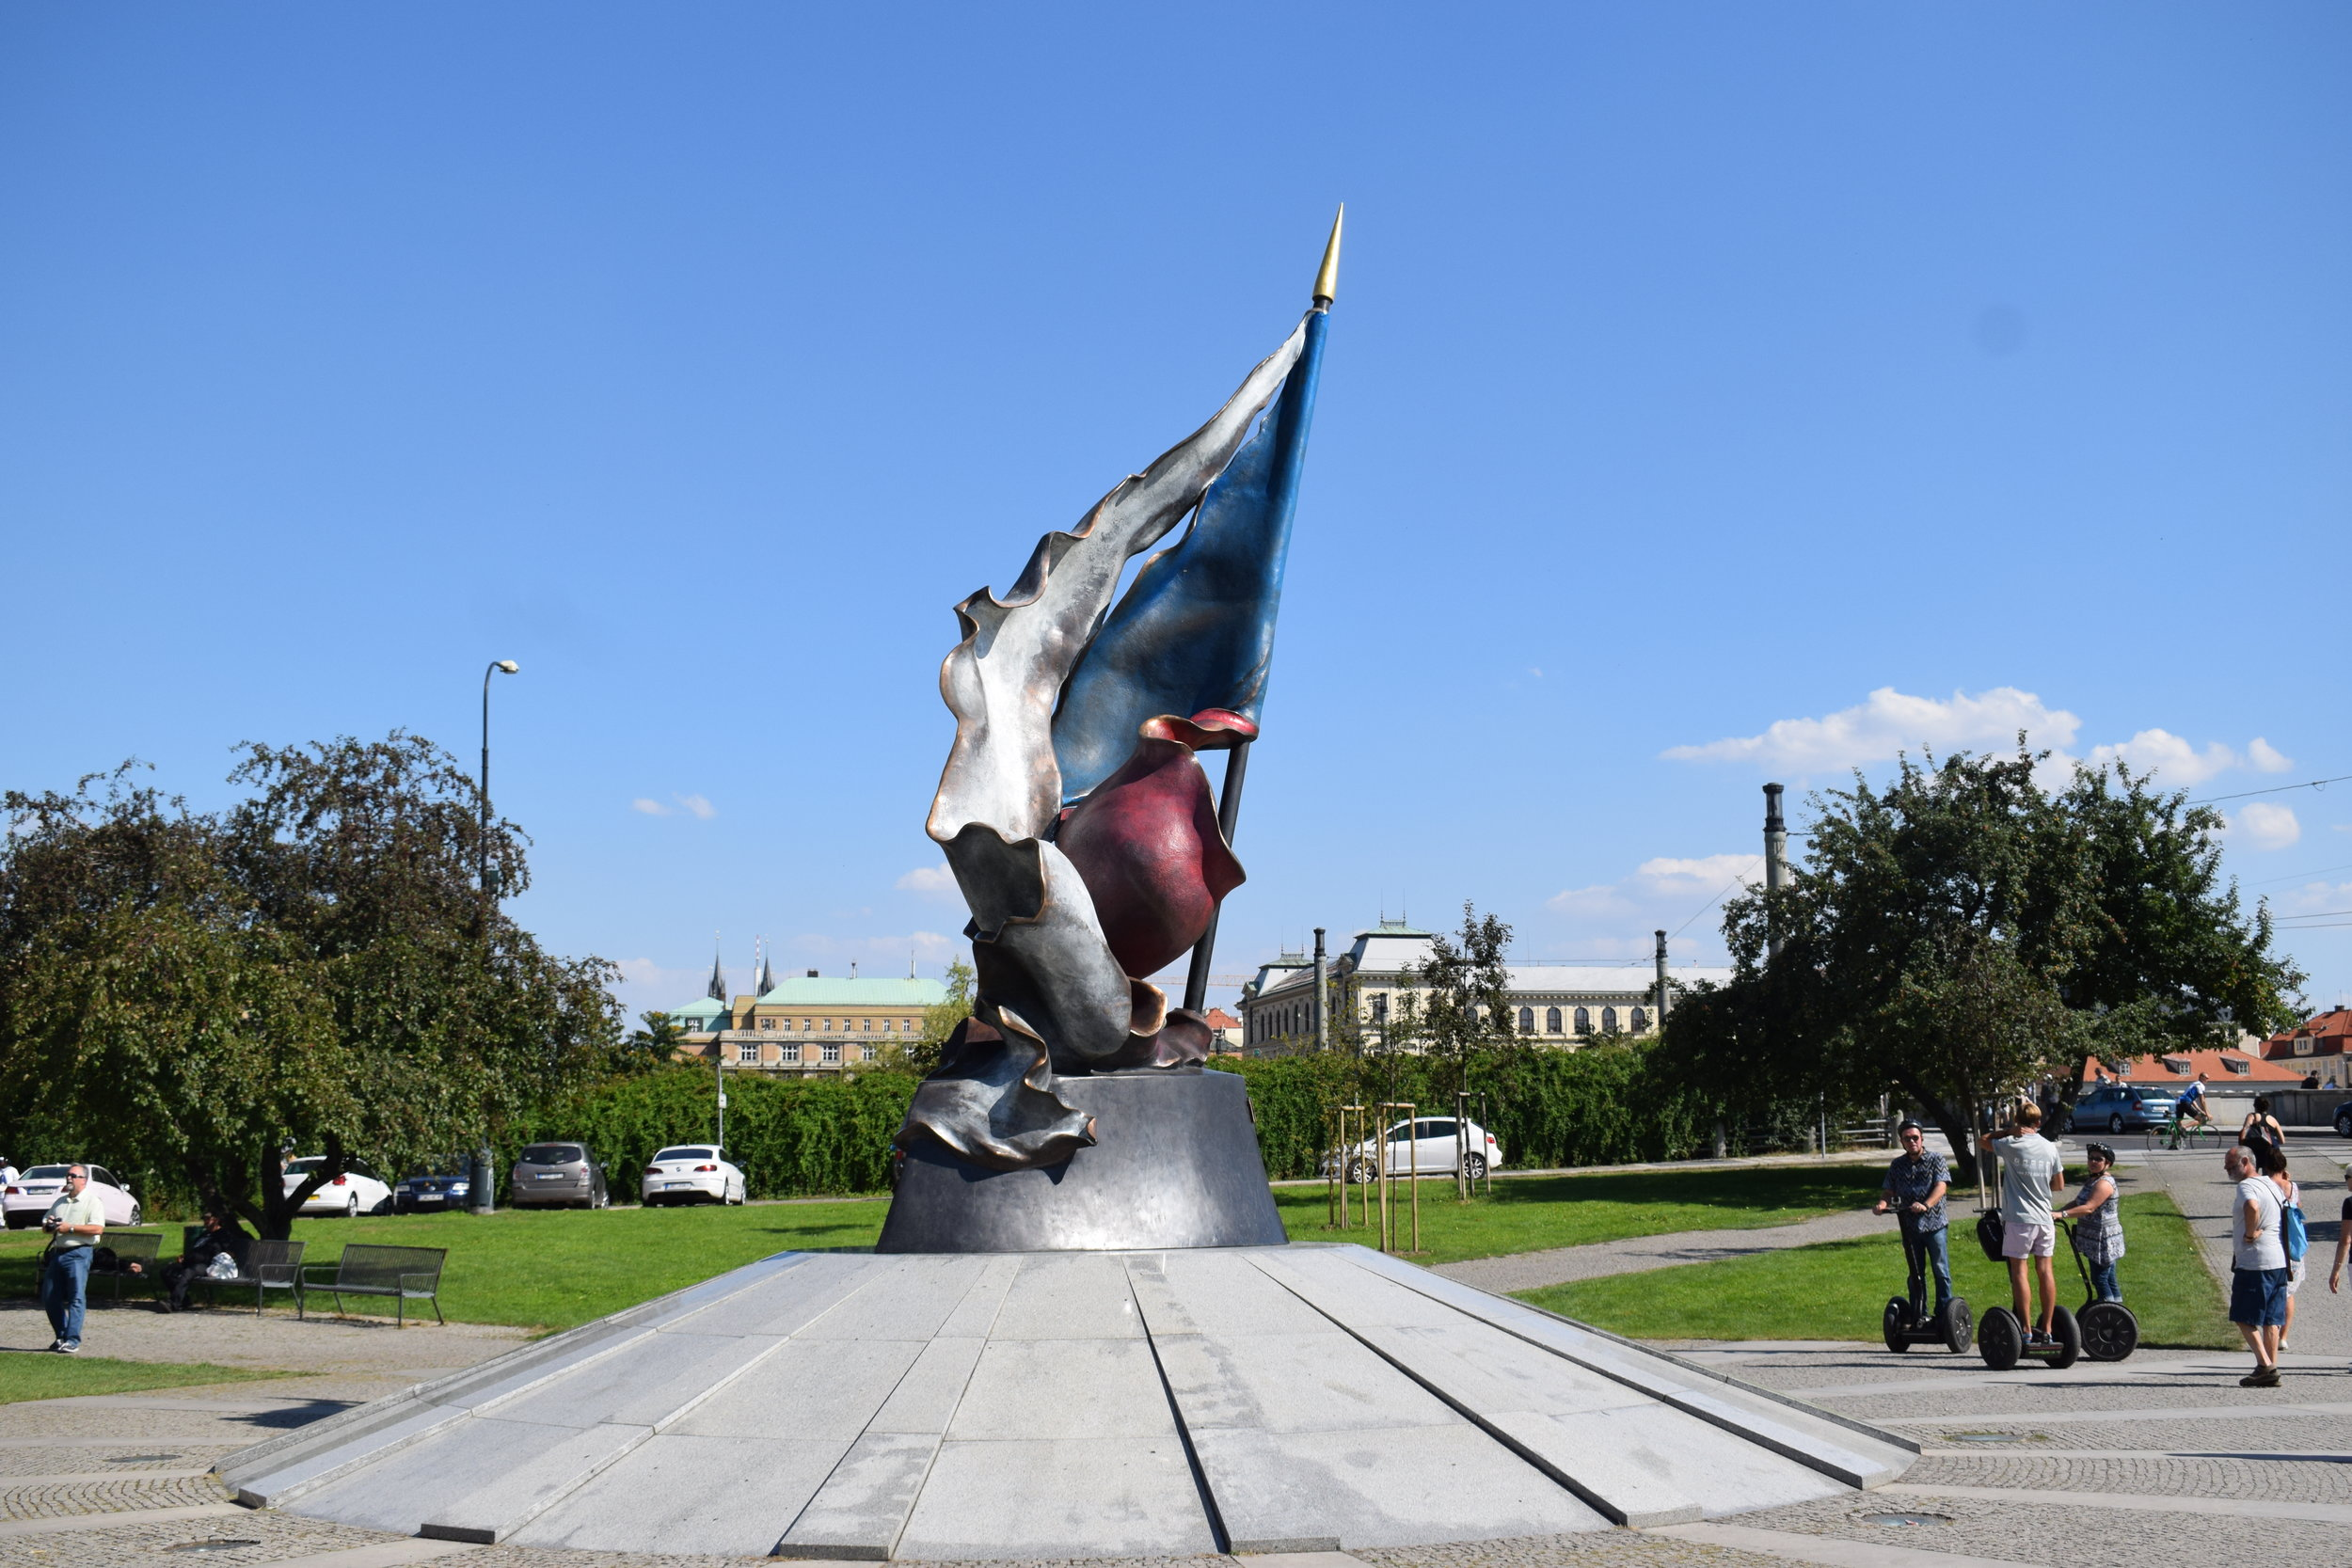 A monument to the second resistance movement of the Czech people, which was in retaliation to the Nazi occupation of Czechoslovakia from 1938 to 1945.